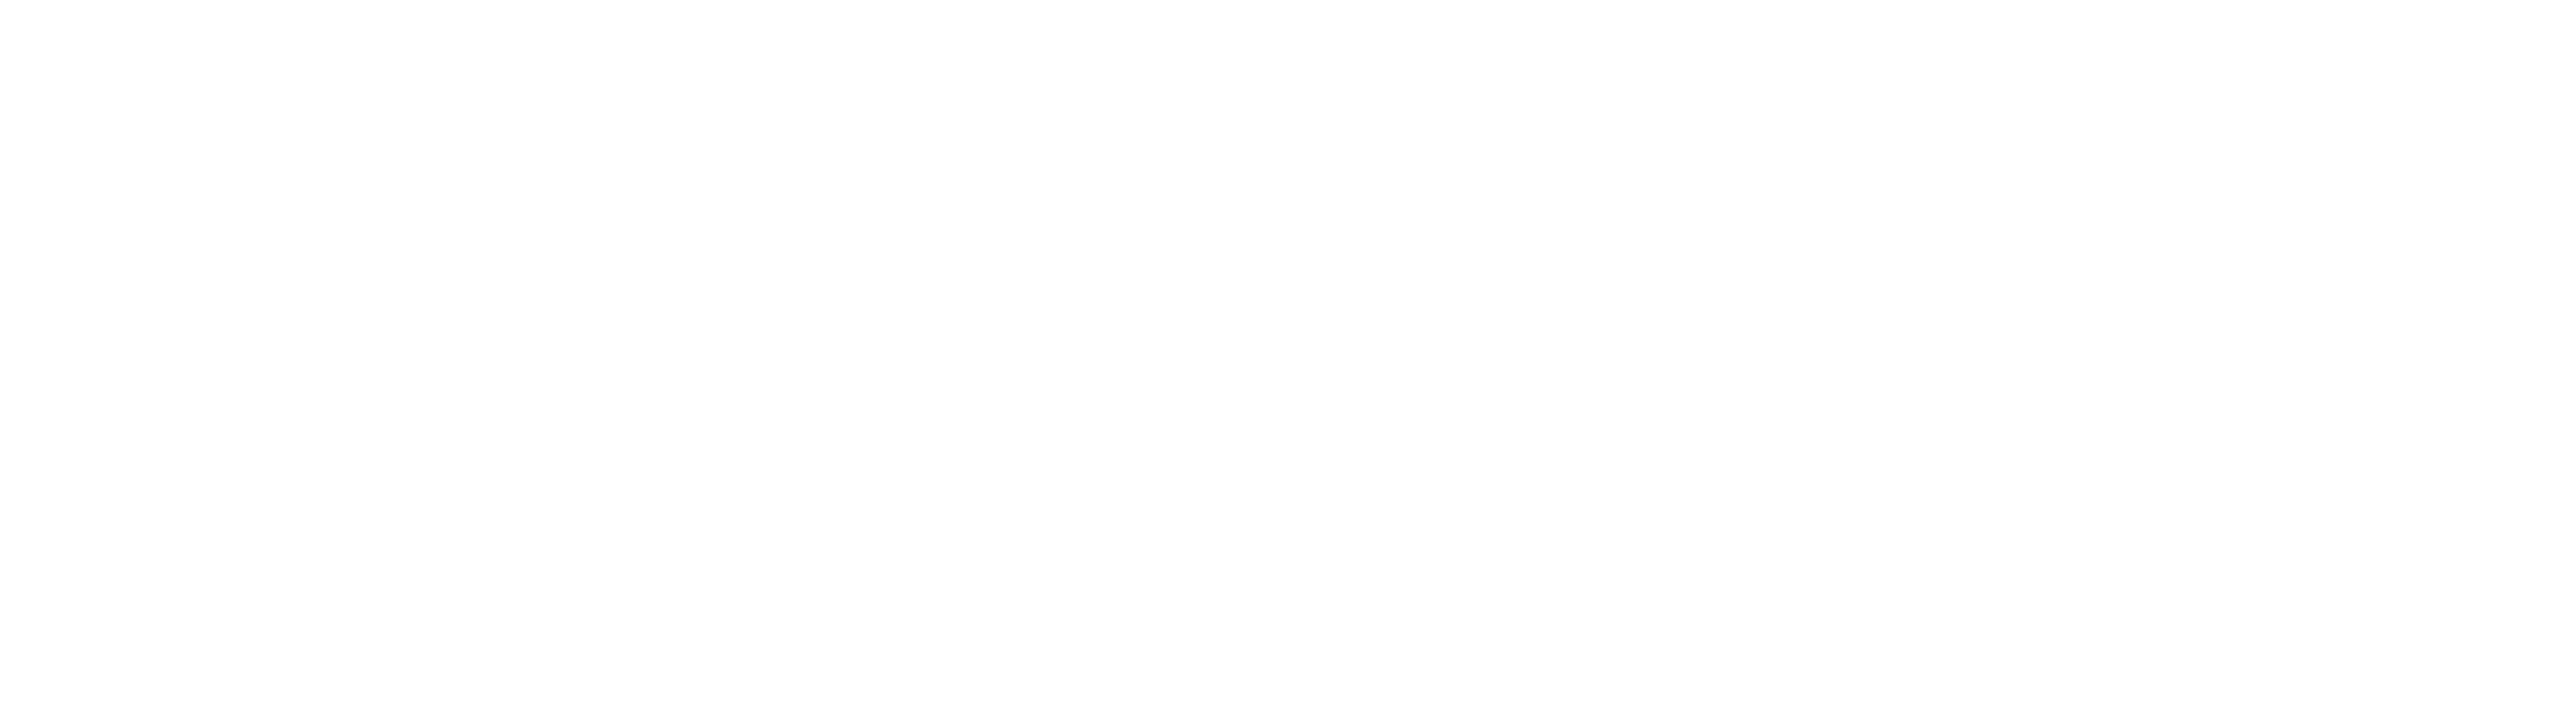 Peter Rogers Florist - Flower Delivery in Stamford, CT